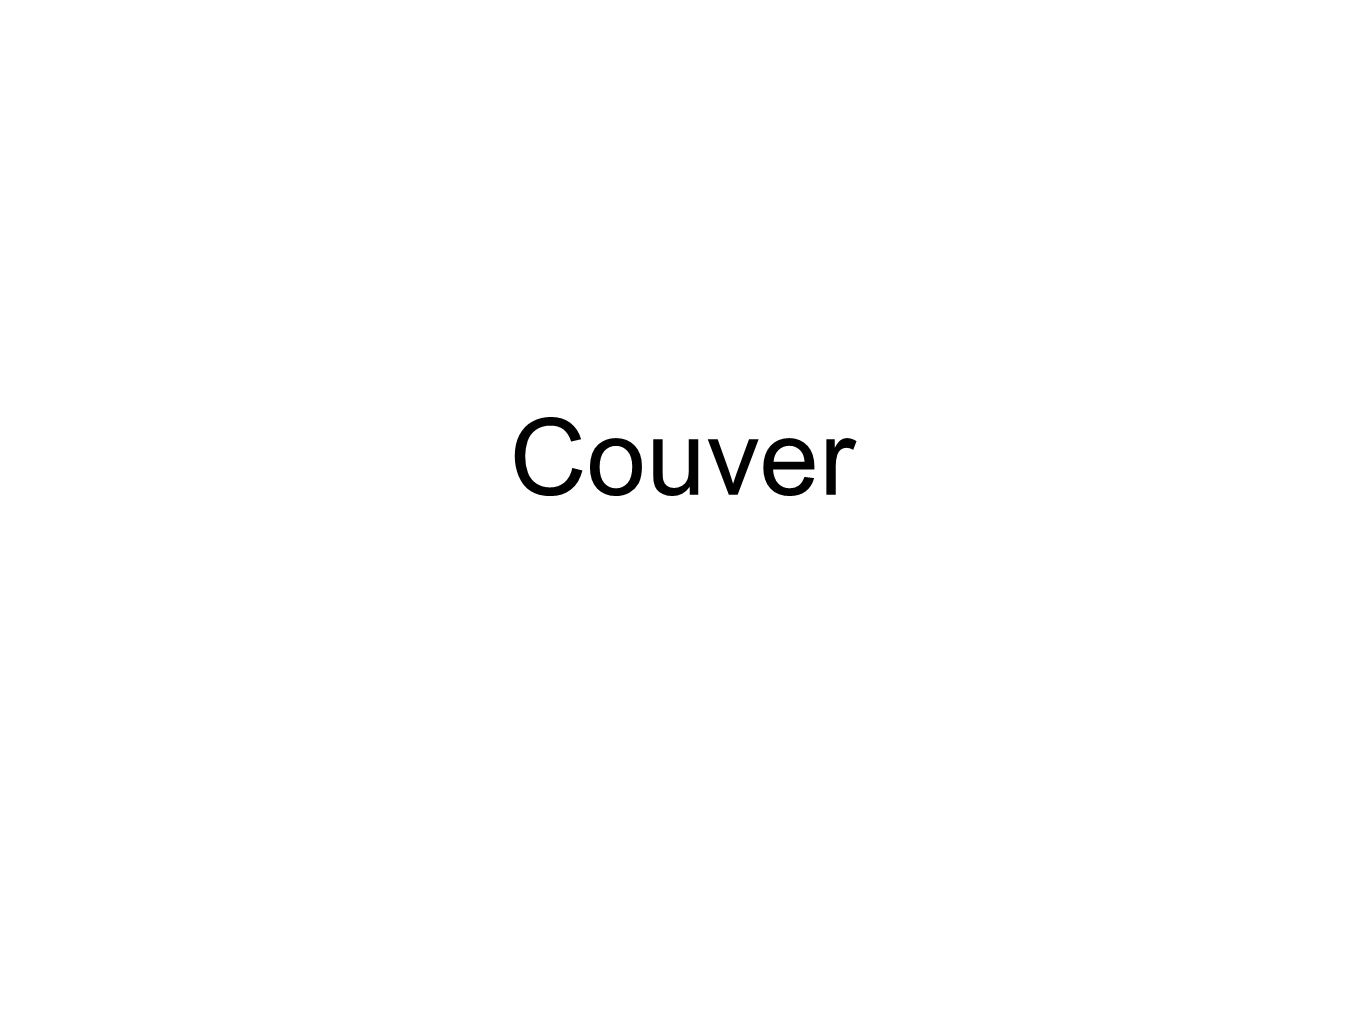 Couver